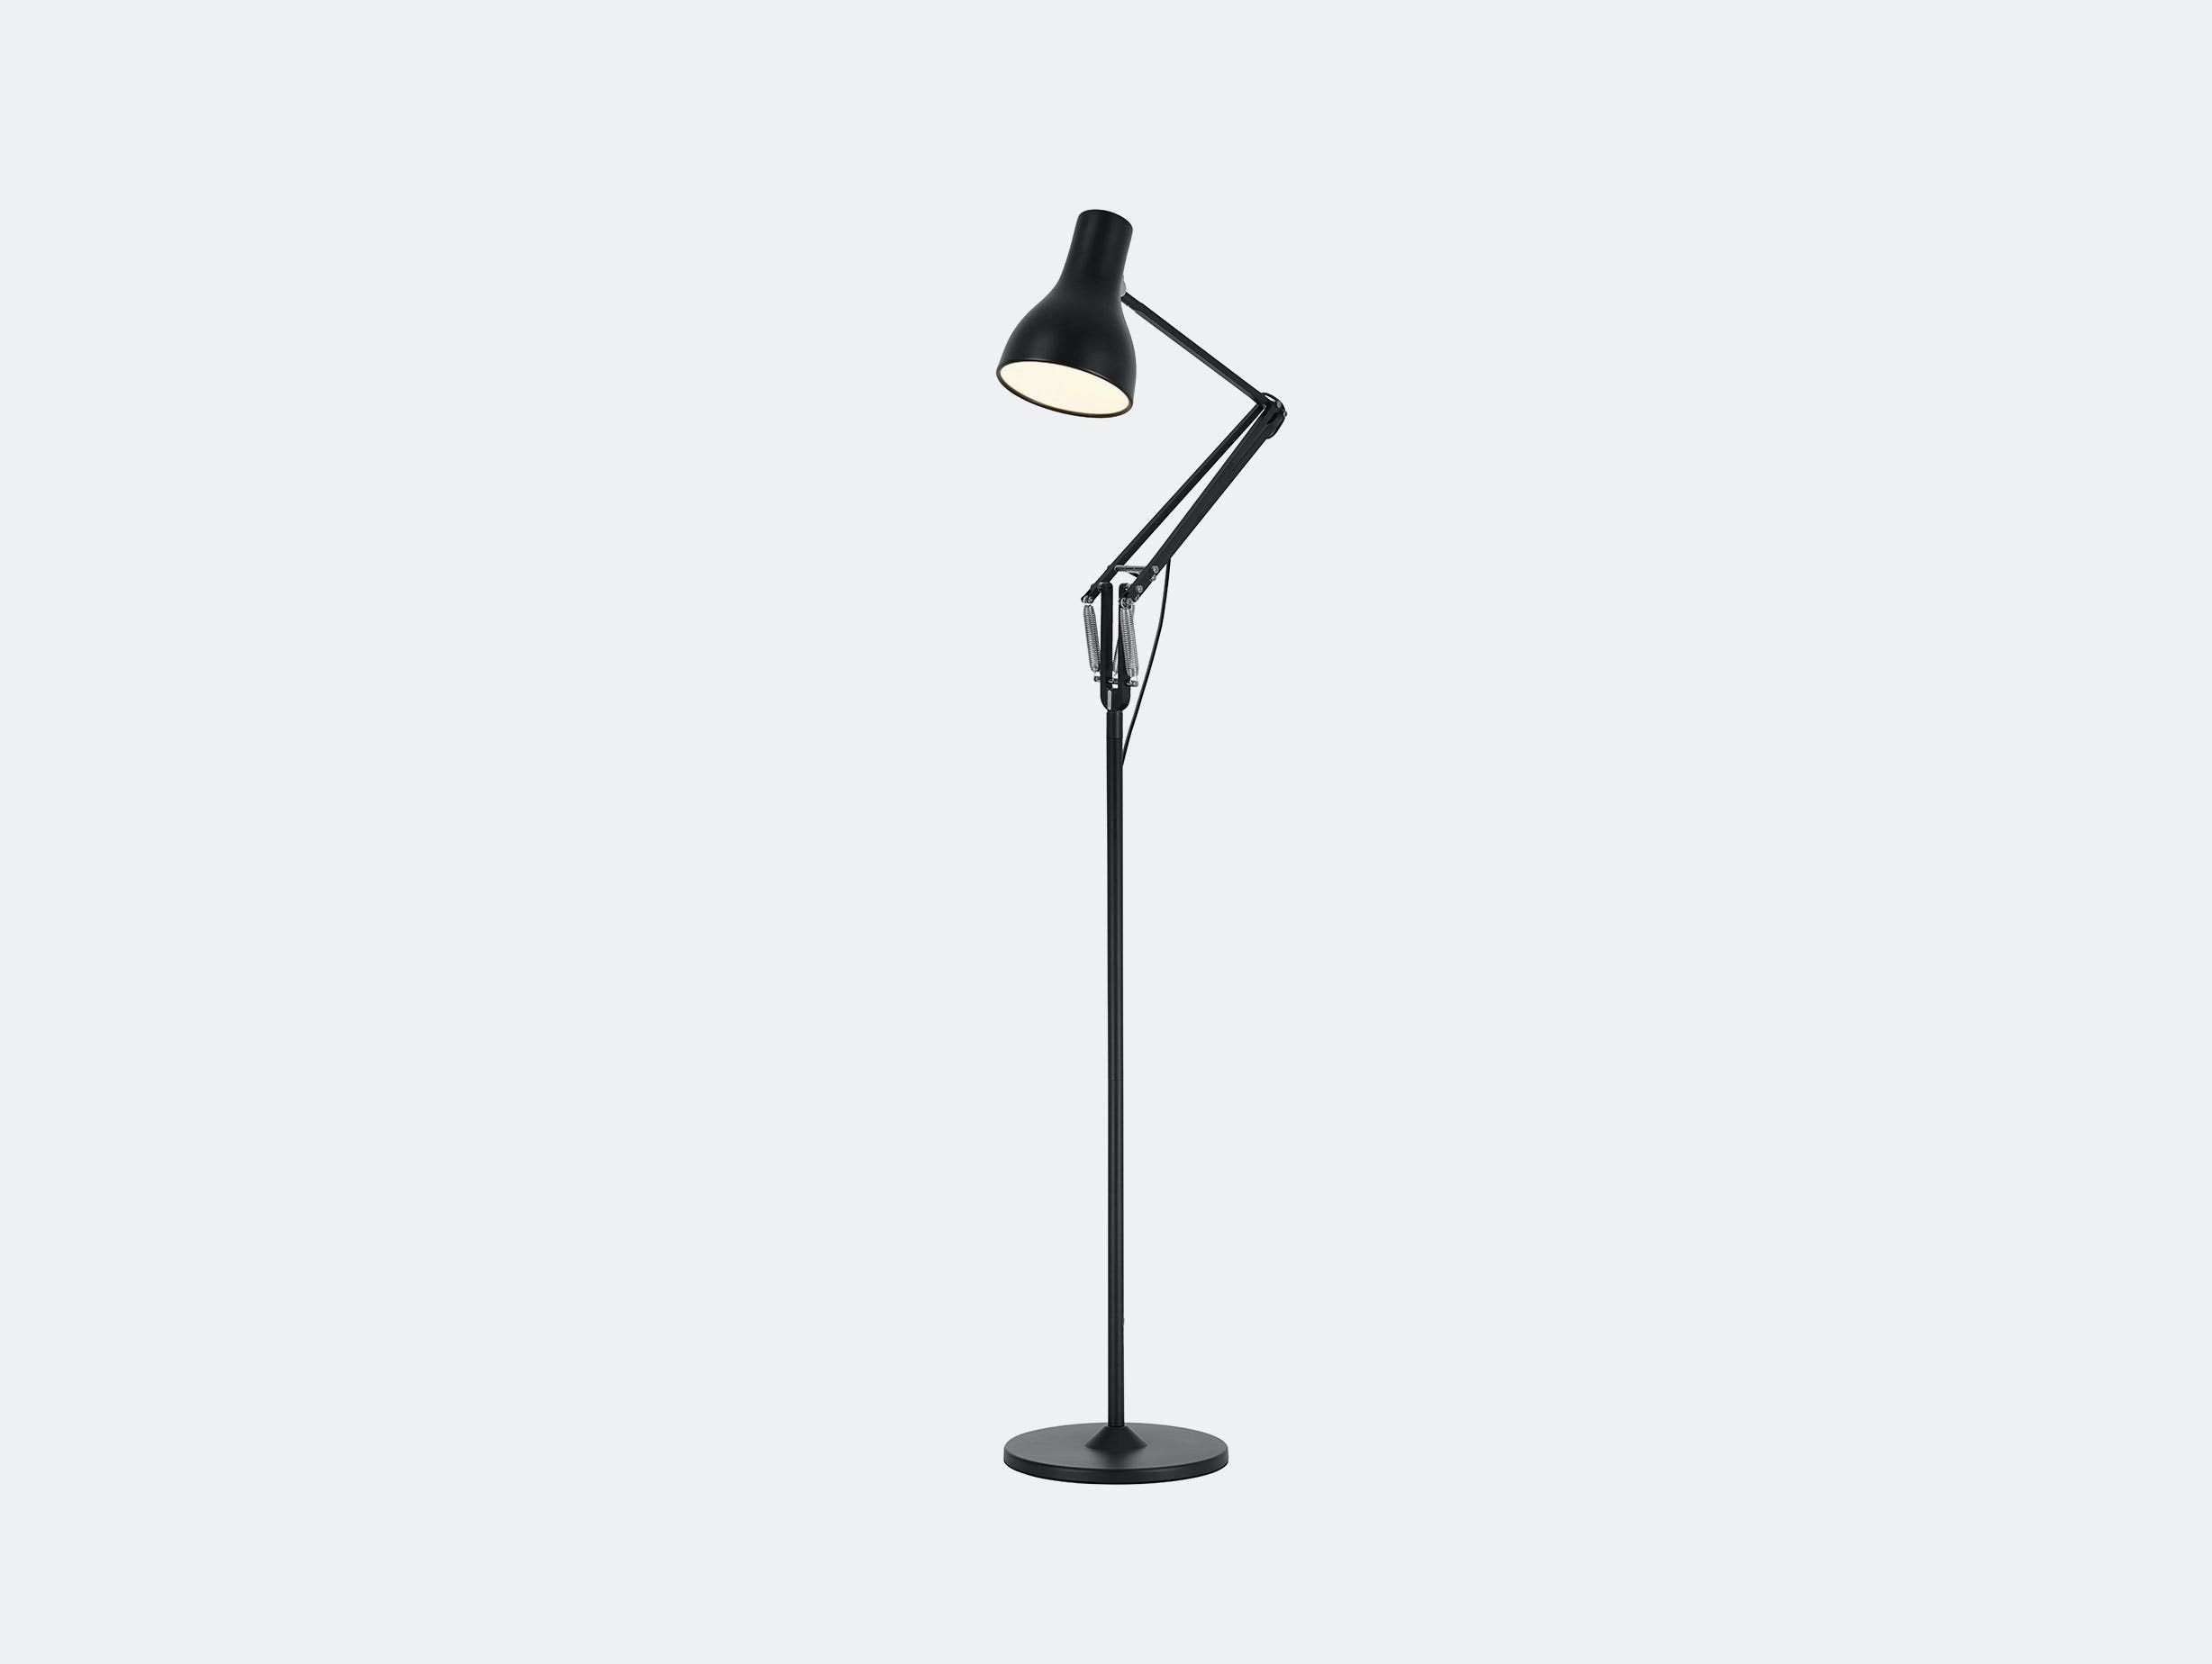 Anglepoise Type 75 Floor Lamp image